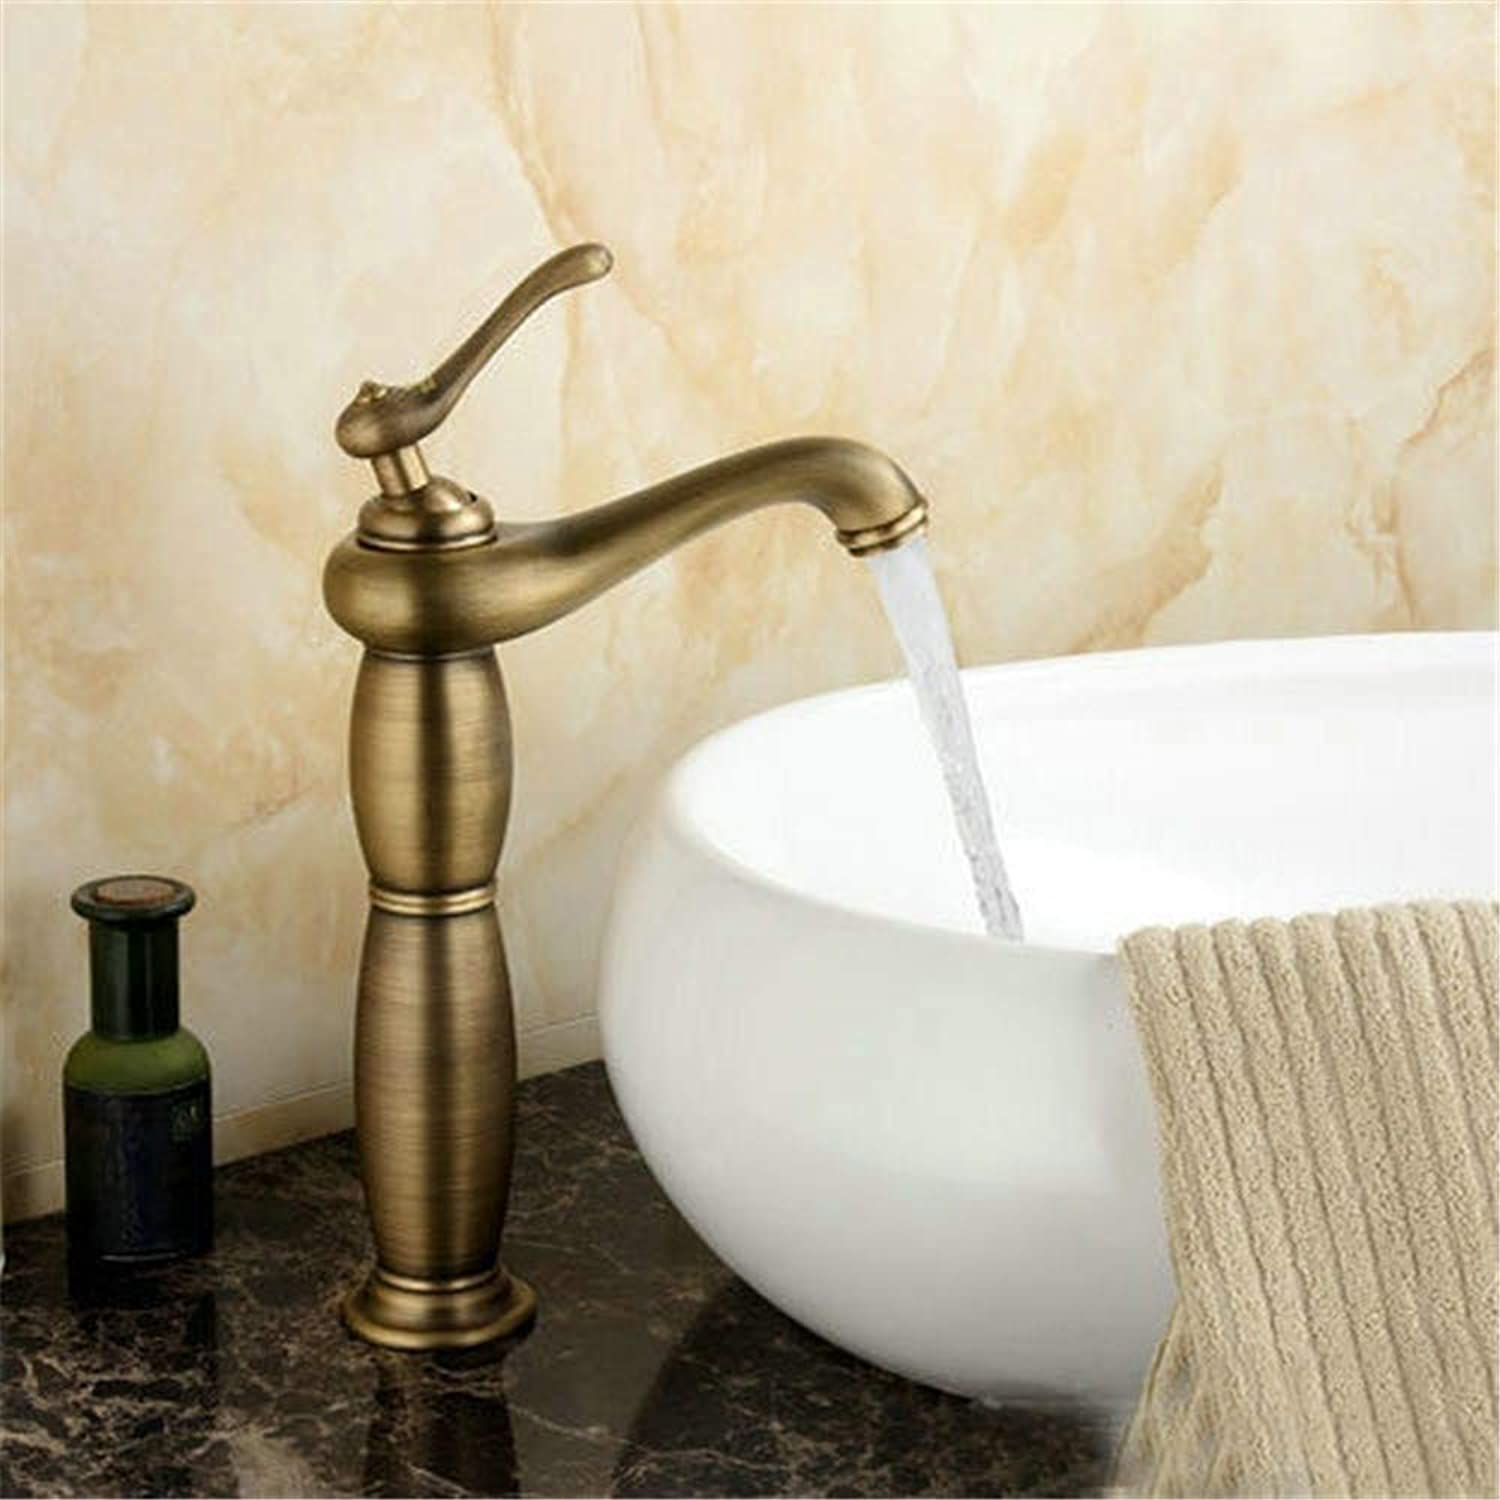 YAWEDA Bathroom Basin Faucets Brass Mixer Tap Antique Faucet Single Handle Retro with Aerator Hot and Cold Water Mixer Basin Faucet